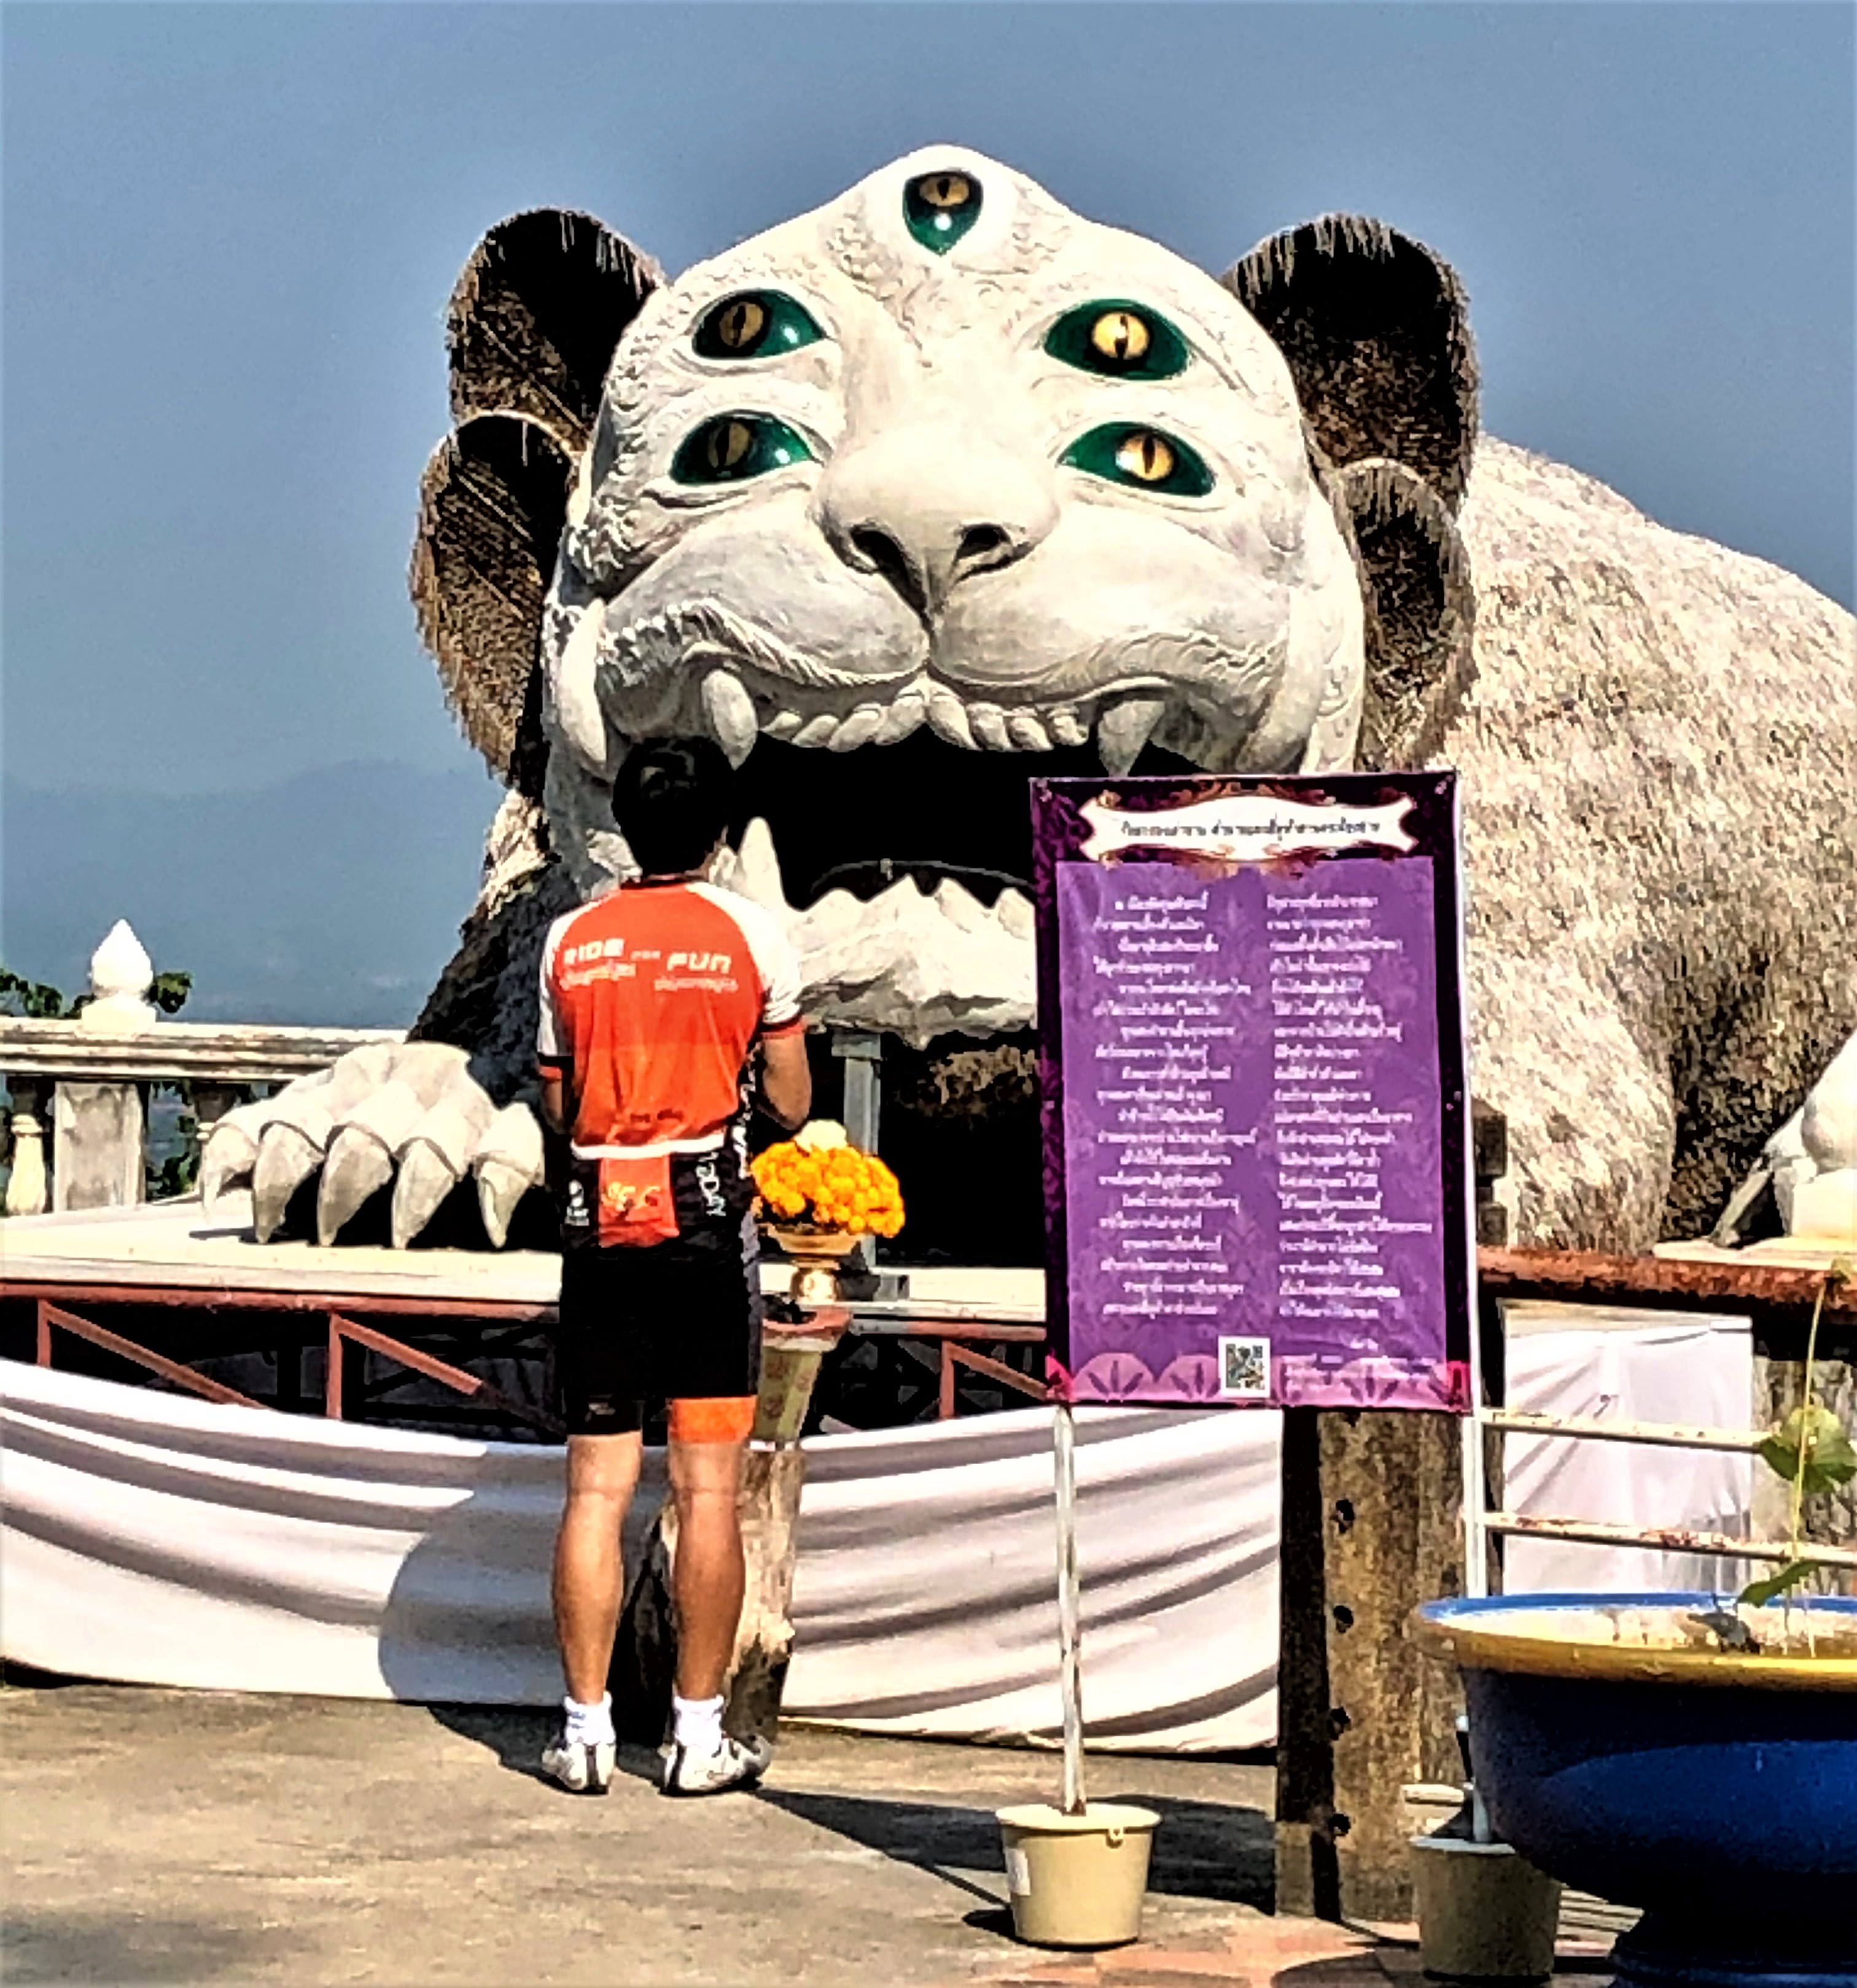 Cyclist making his offering to the large Sihuhata at Wat Phra That Doi Khao Kwai